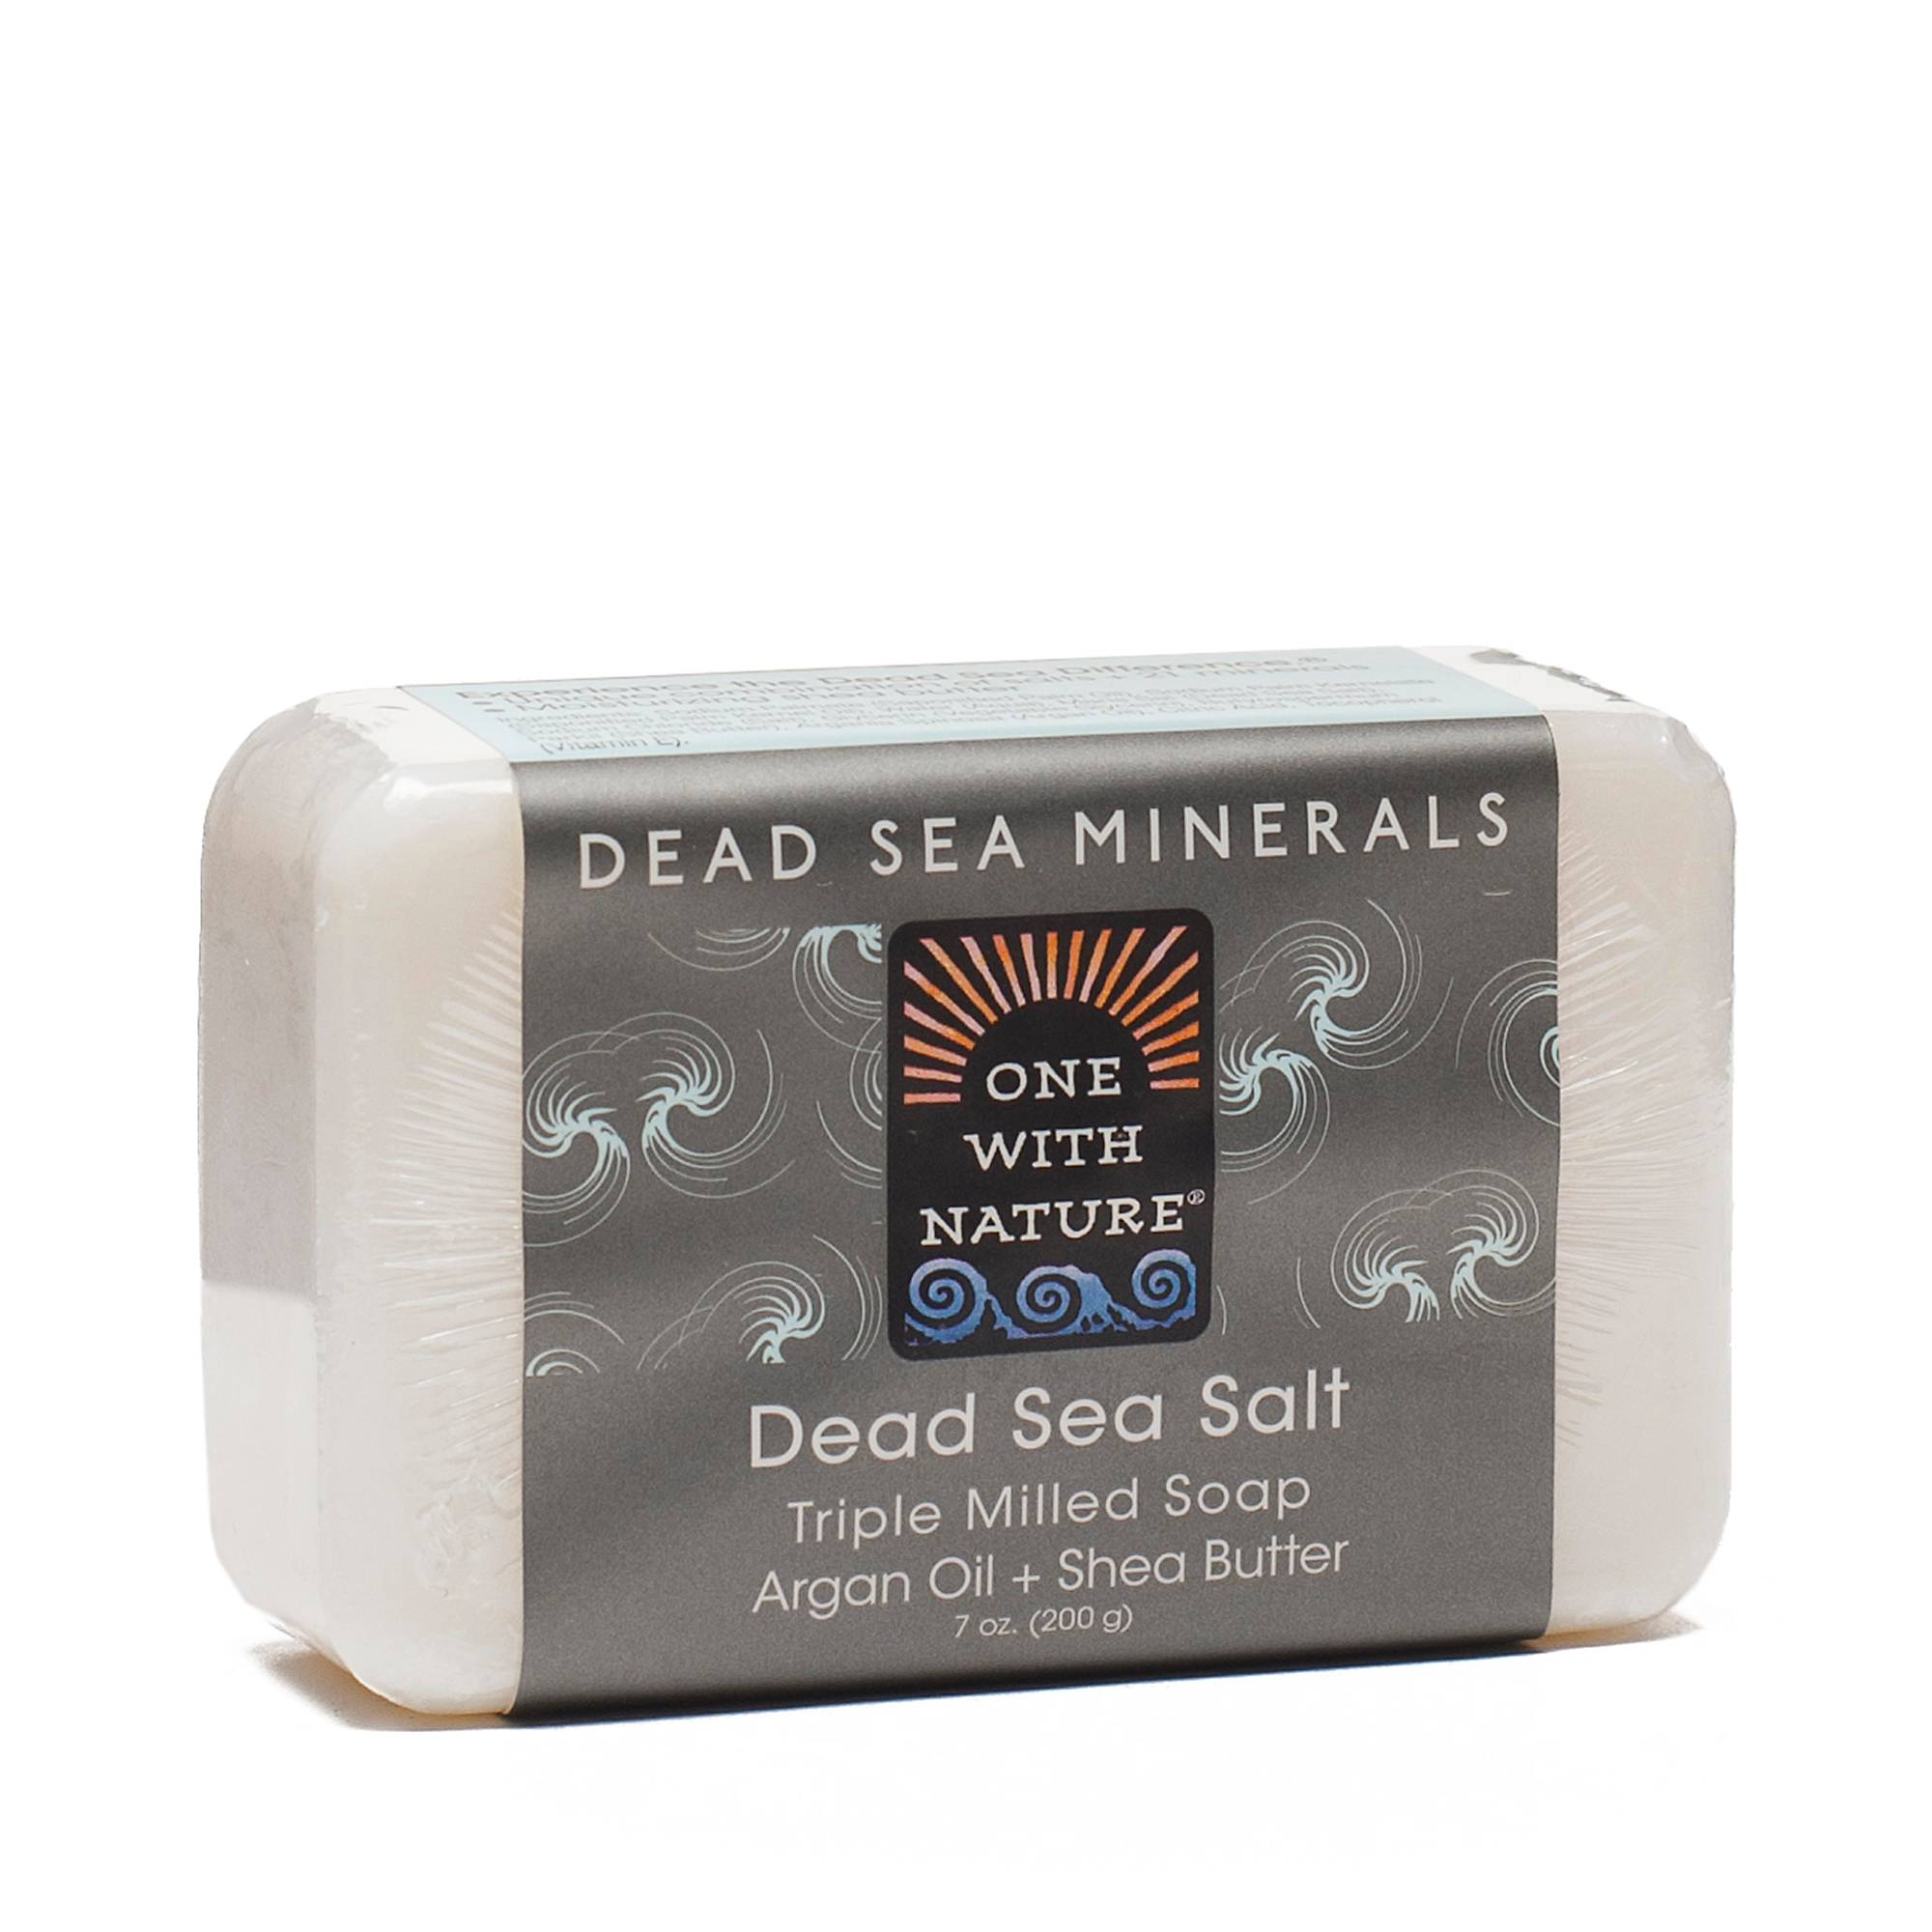 One With Nature Dead Sea Salt Soap | World Market